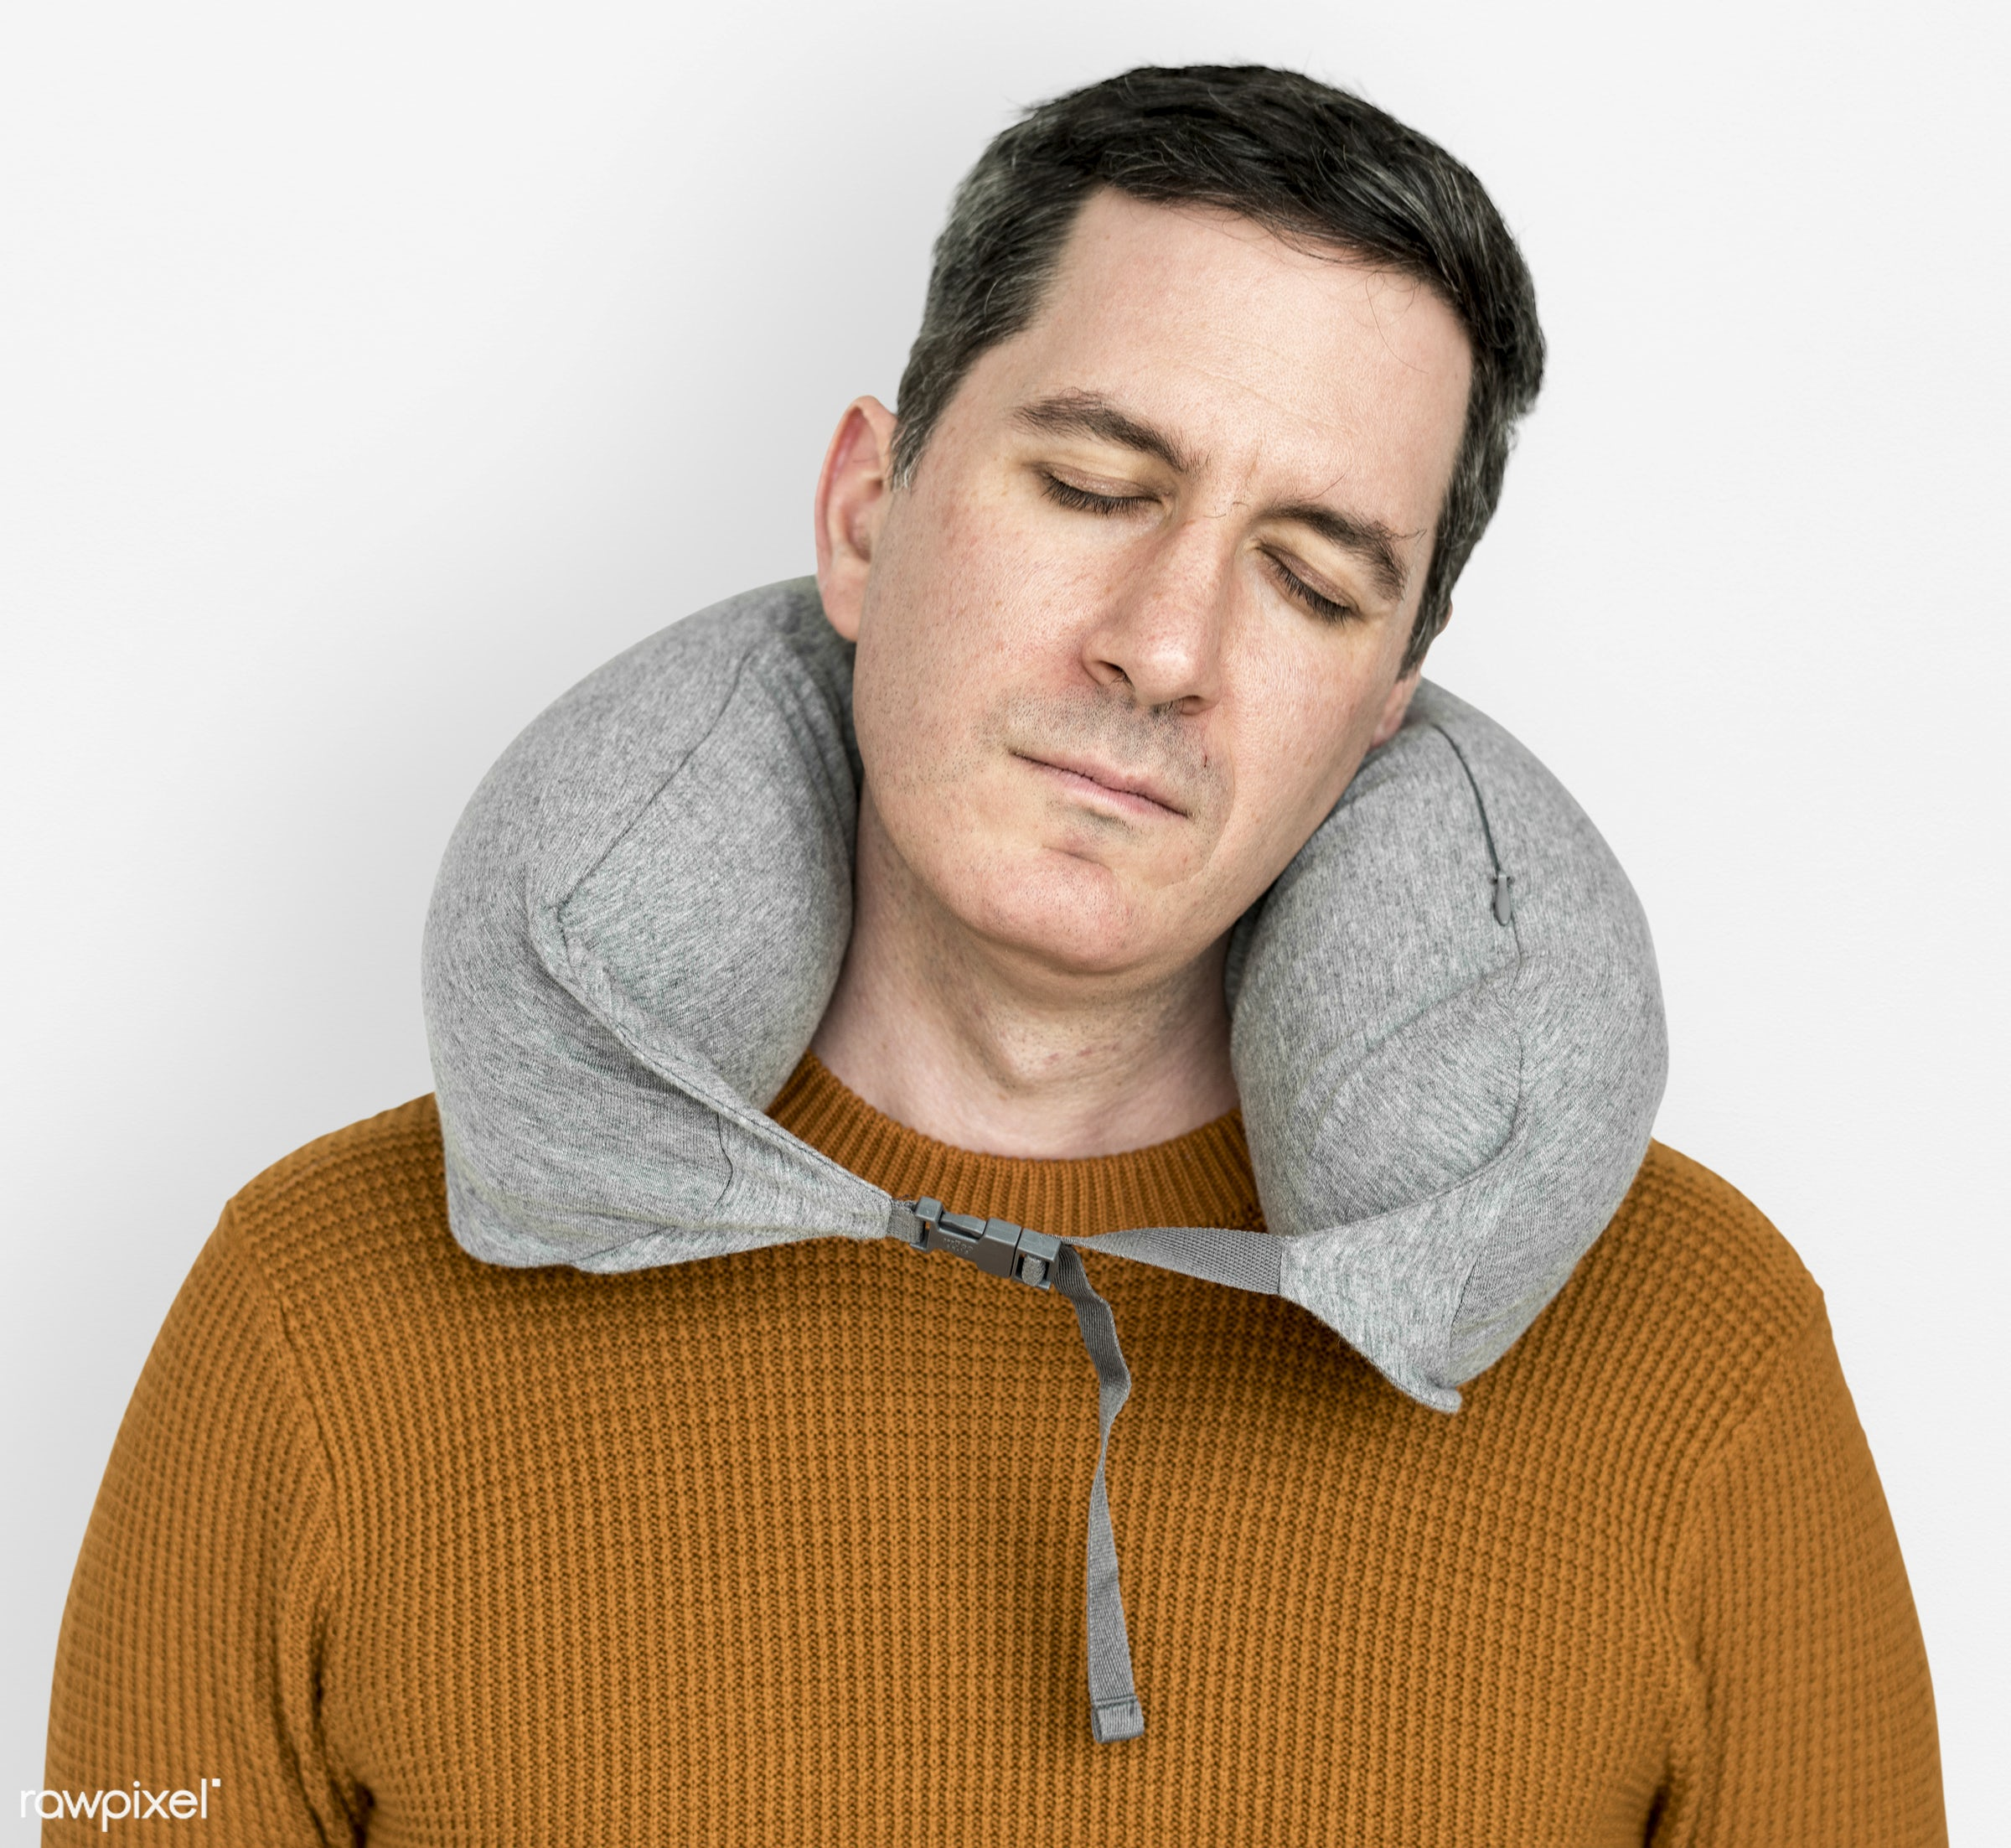 studio, person, relax, neck support, people, comfortable, sleepy, isolated, support, exhausted, white, cushion, portrait,...